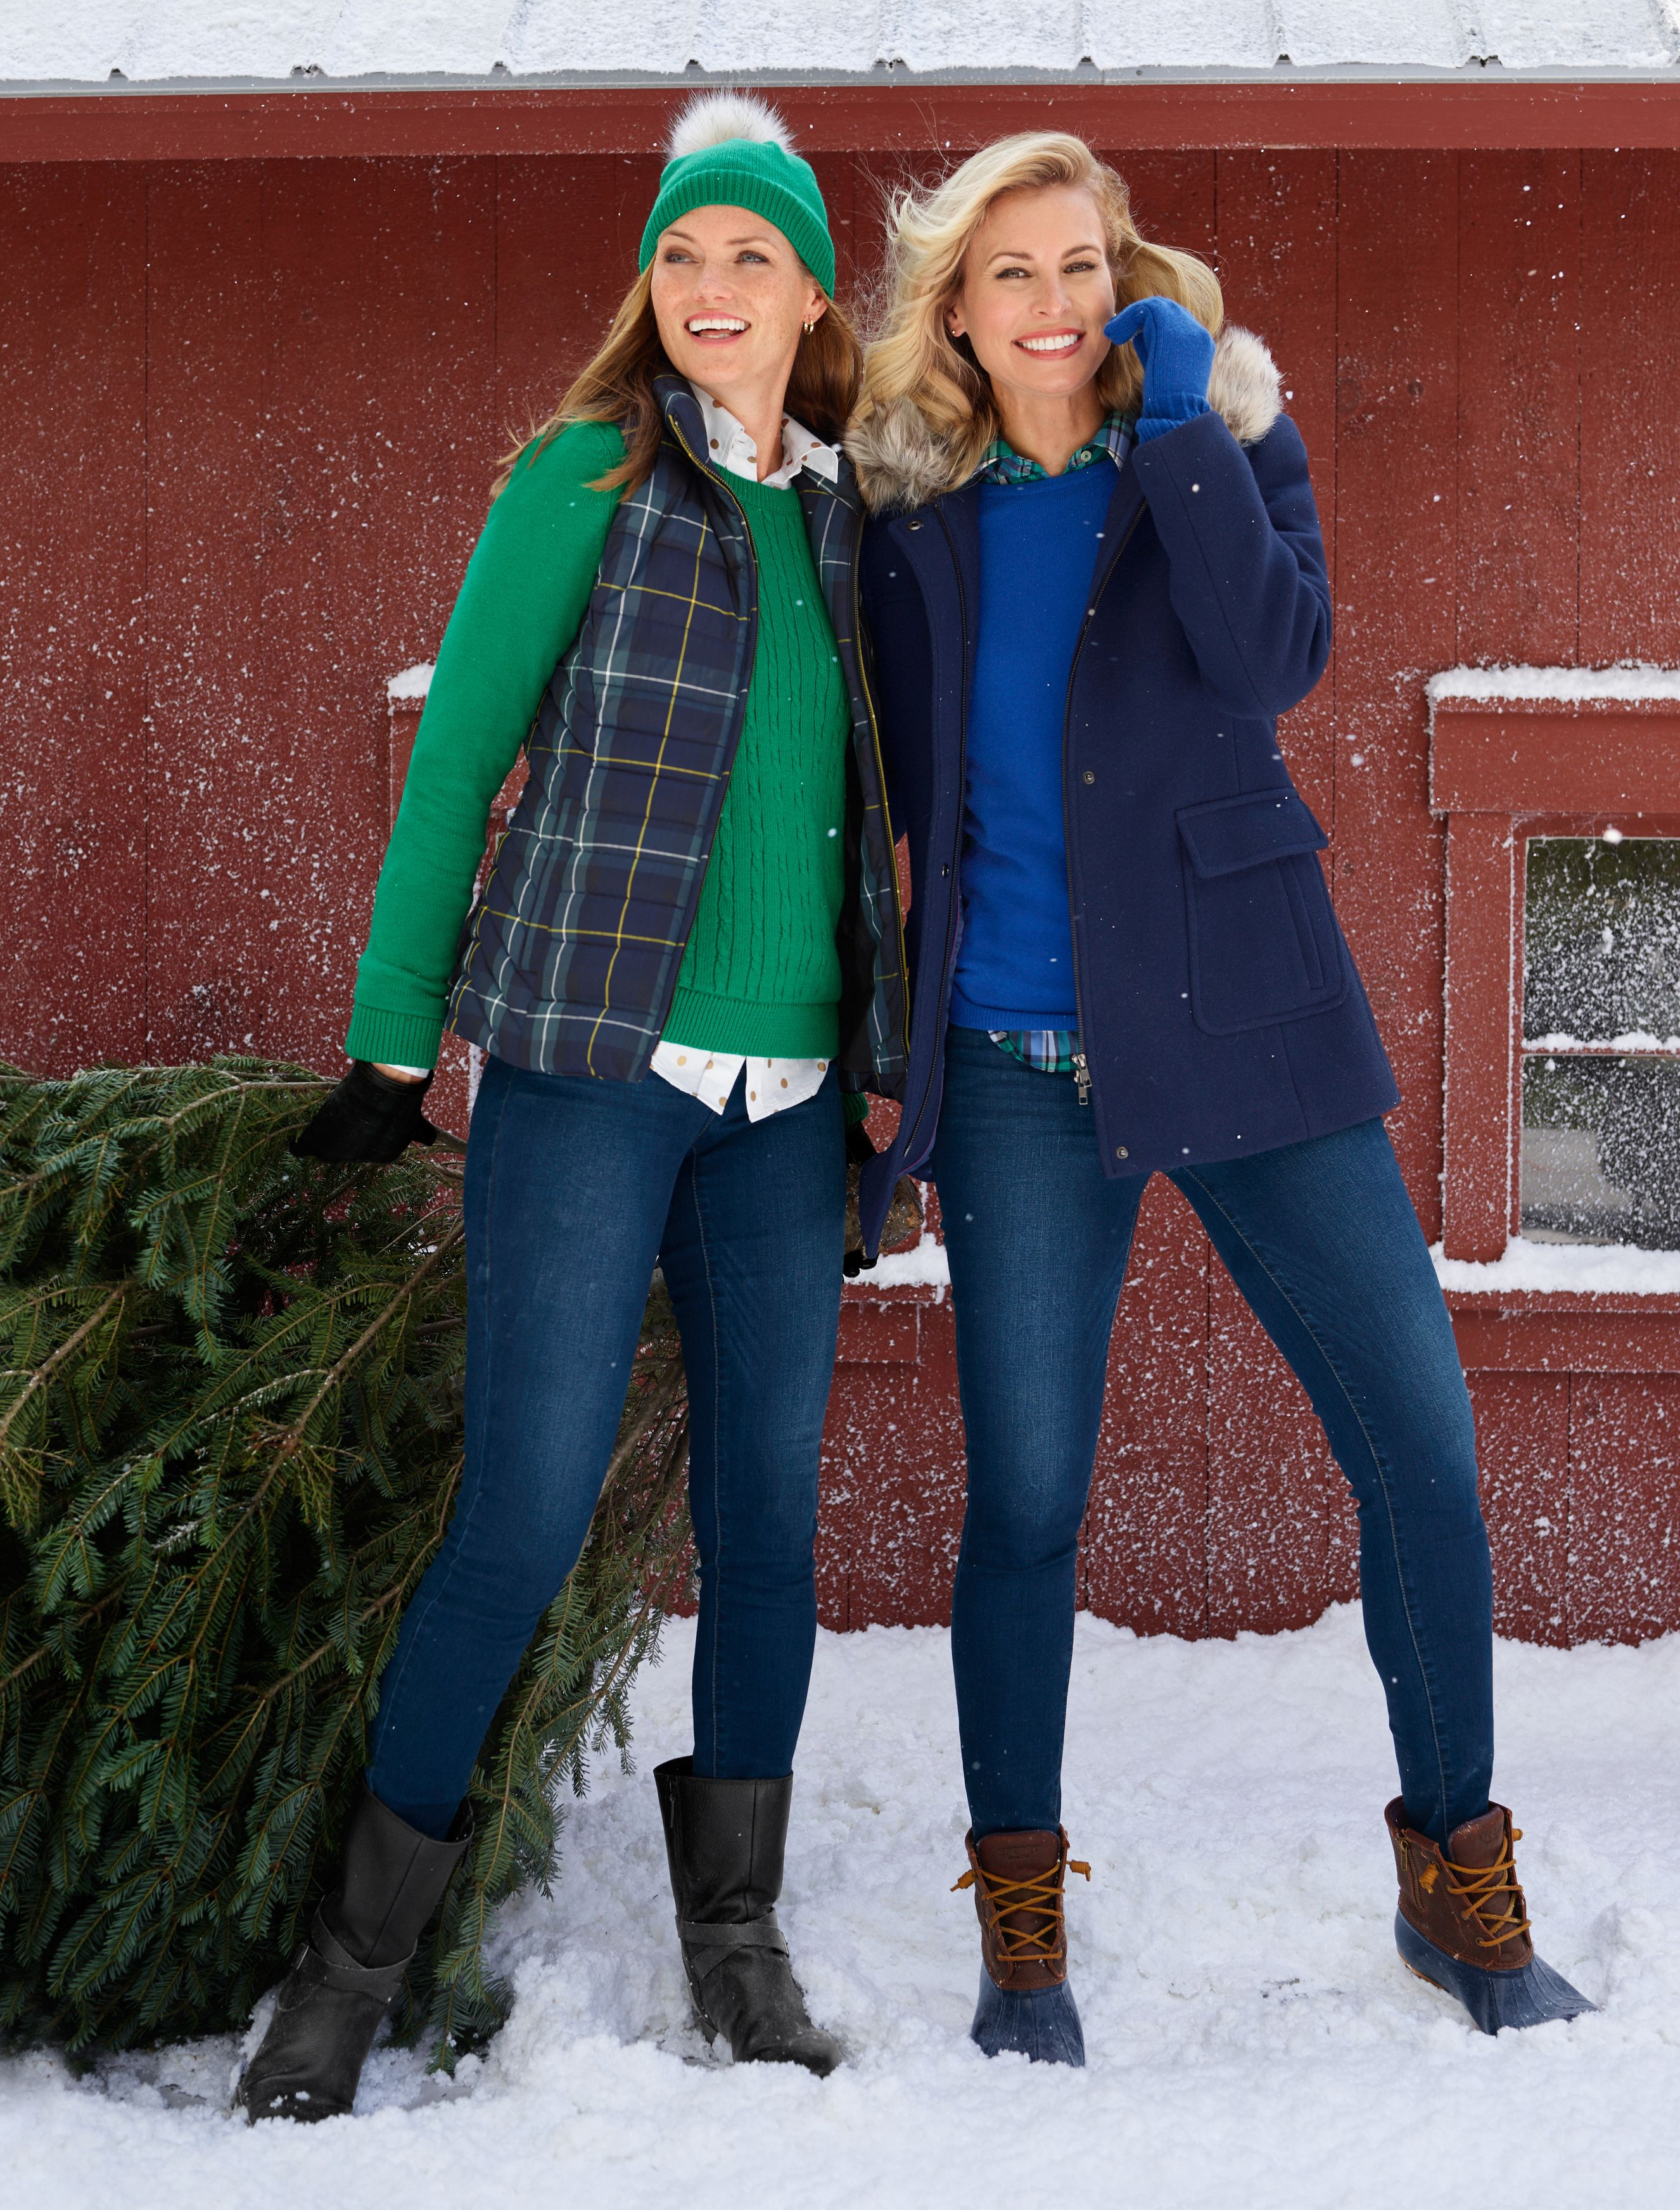 Find A Friend For A Holiday Stroll Whether You Re In Search Of The Perfect Tree Or Admiring The Neighborhood Li Womens Fashion Jackets Fashion Outerwear Women [ 3489 x 2652 Pixel ]